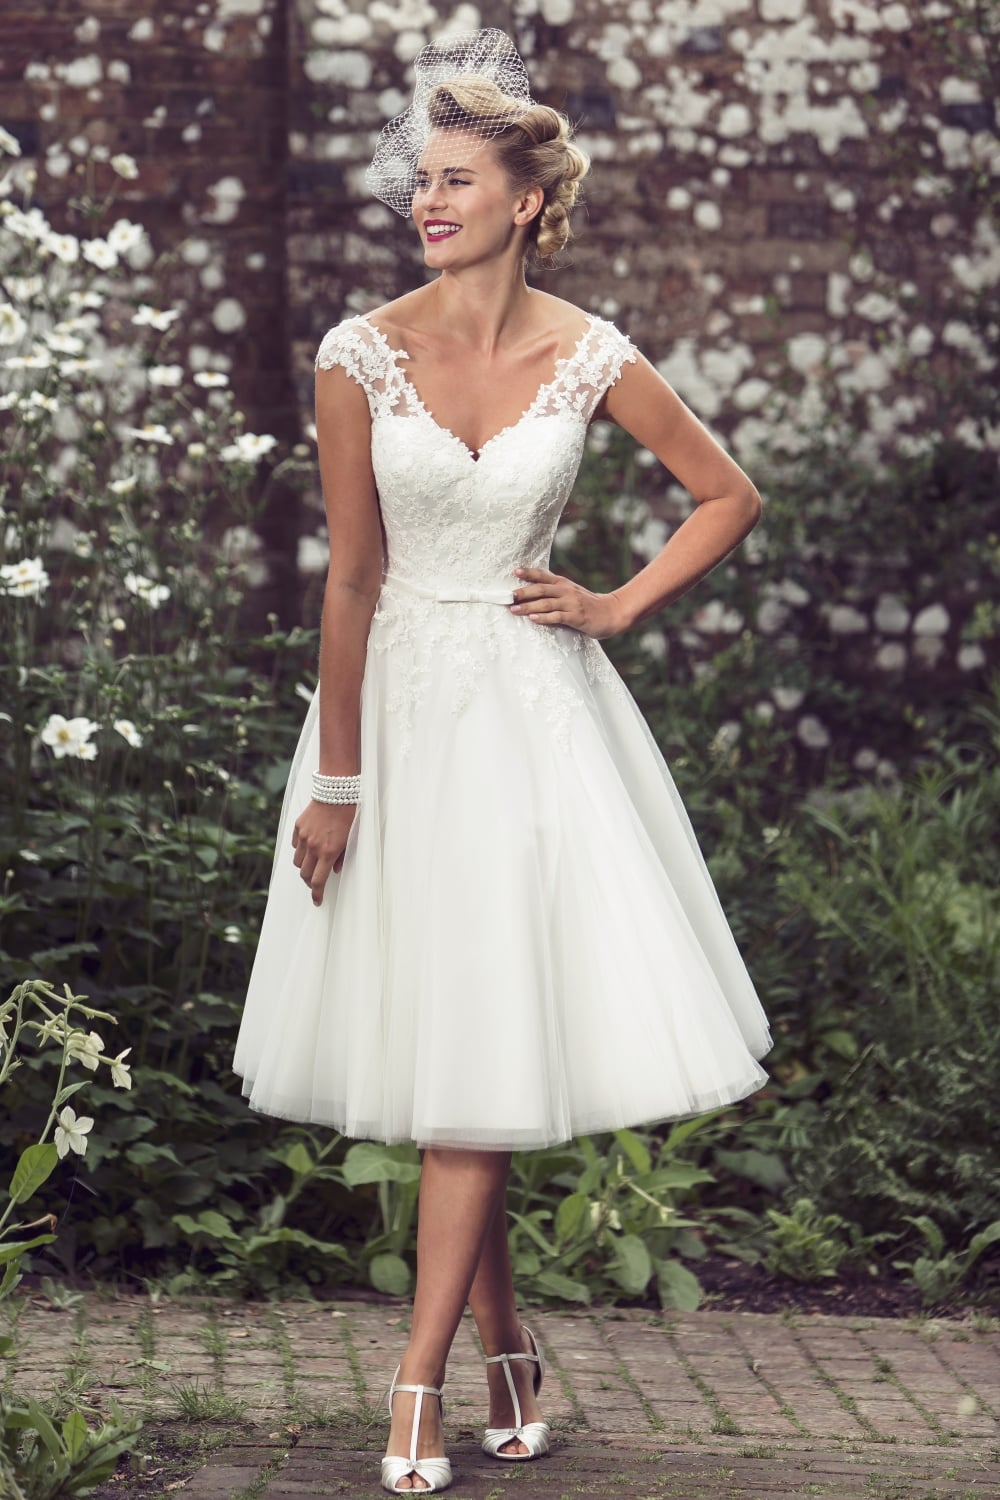 Wedding Dresses Online Bridesmaid Dresses House of Brides